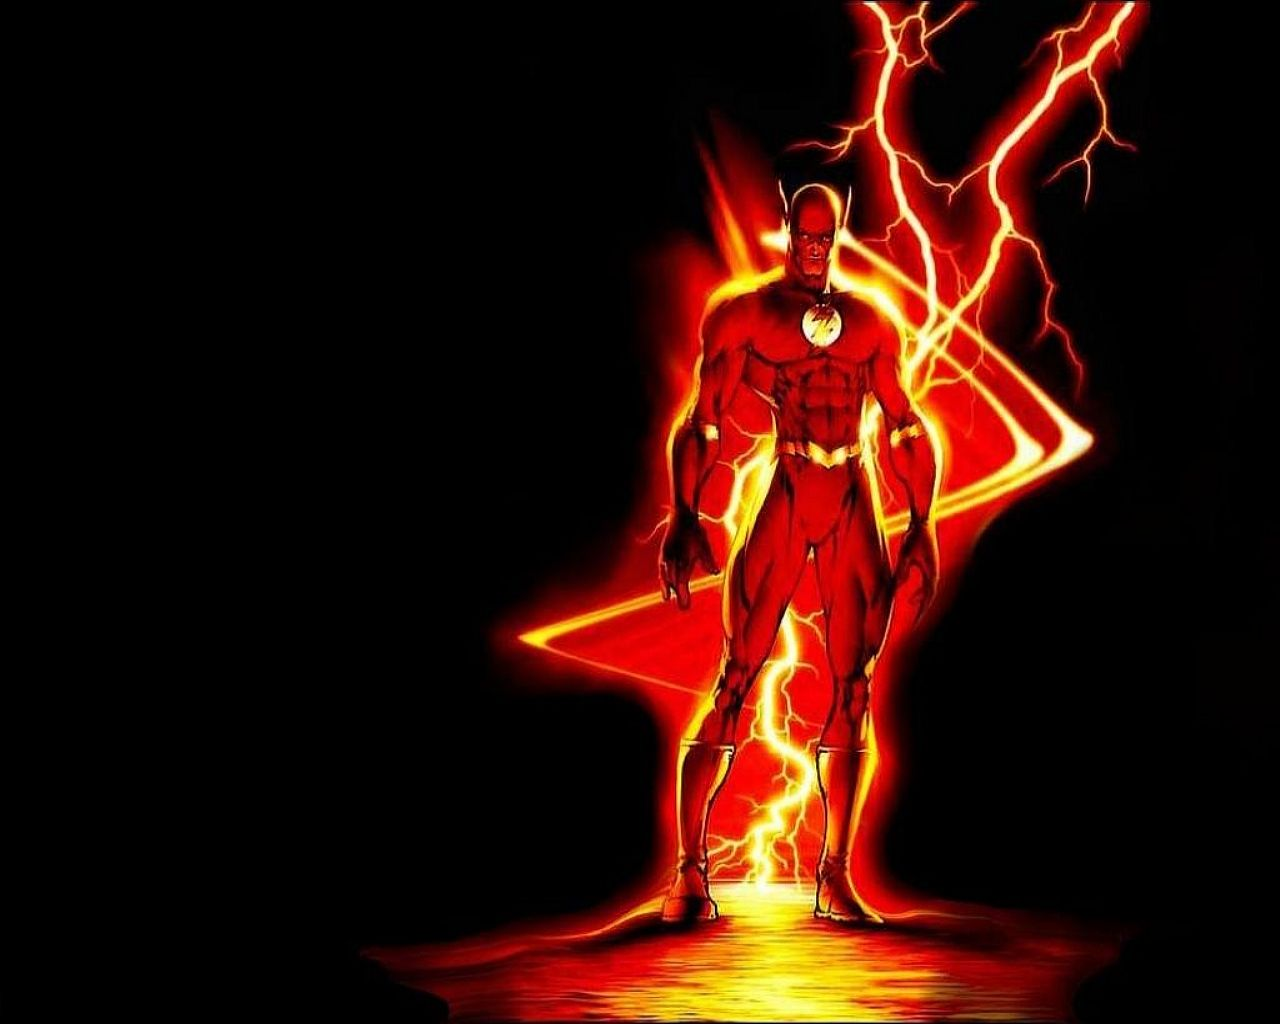 Comics Wallpapers   Download The Flash 2 Wallpapers Photos 1280x1024